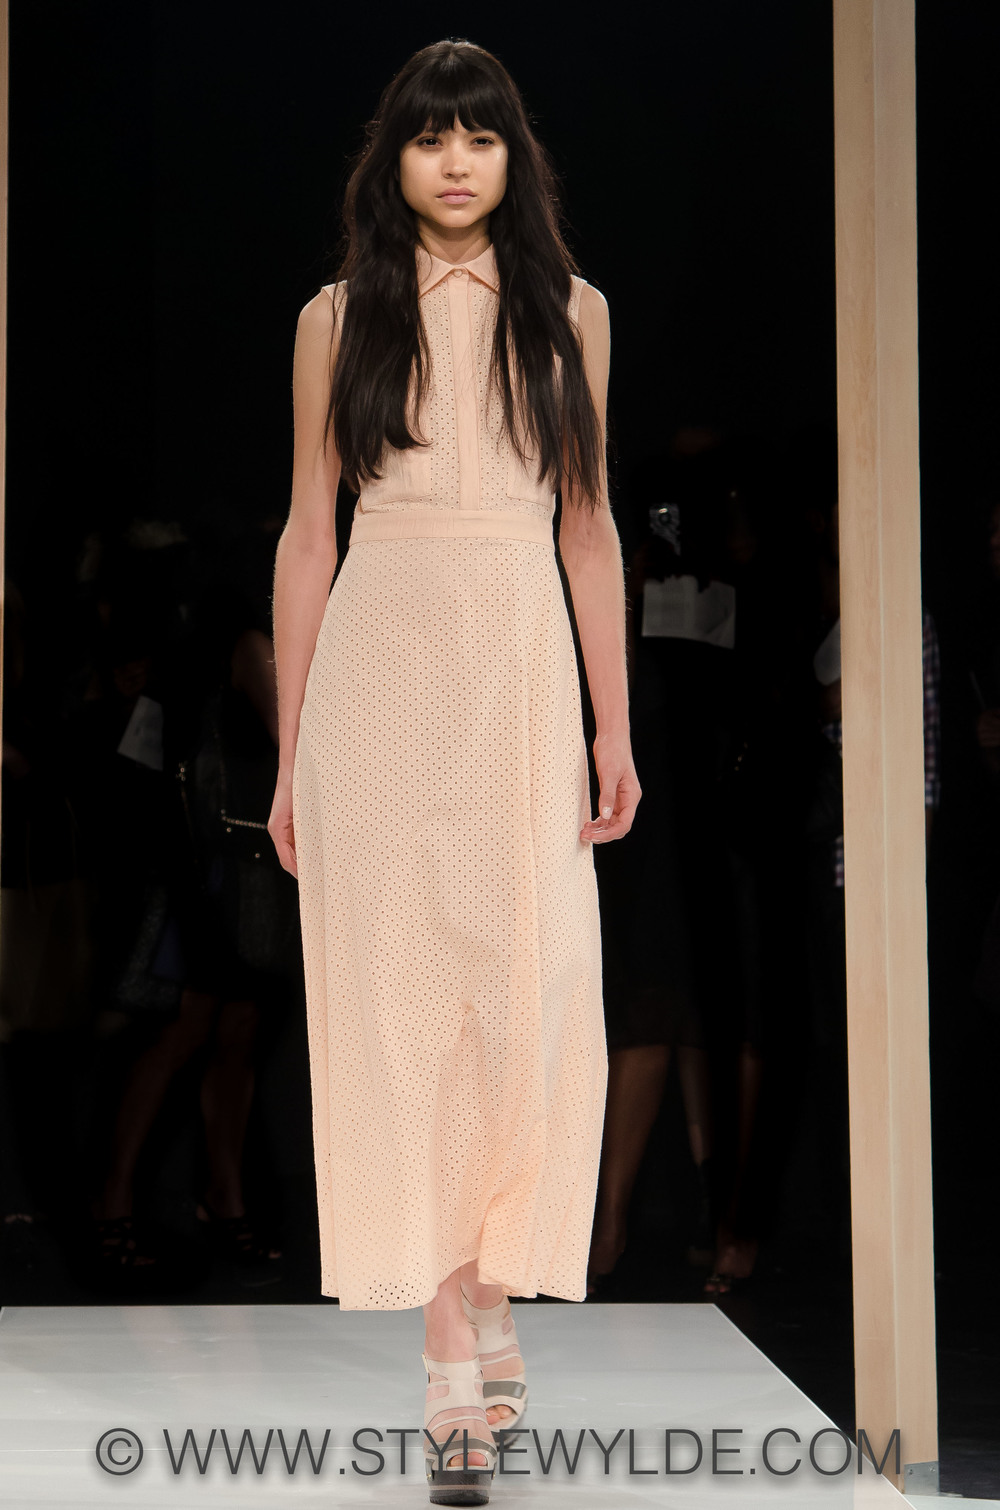 STYLEWYLDE_Adeam_SW_SS2014_ 1 of 1-3.jpg